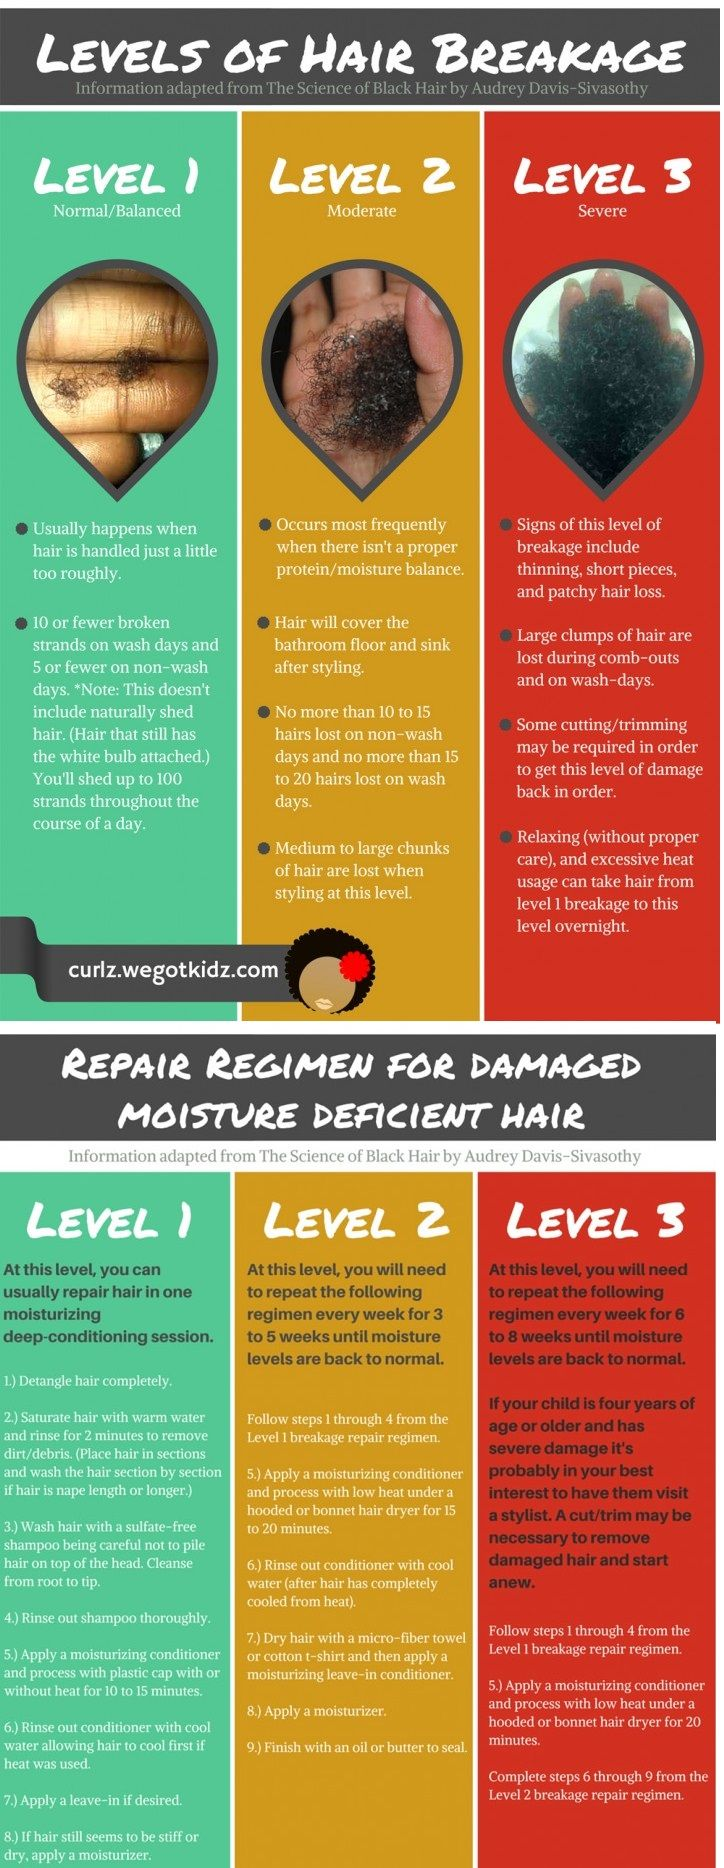 Levels of Hair Breakage and How to Fix Damage from Moisture Deficiency in Natural Hair